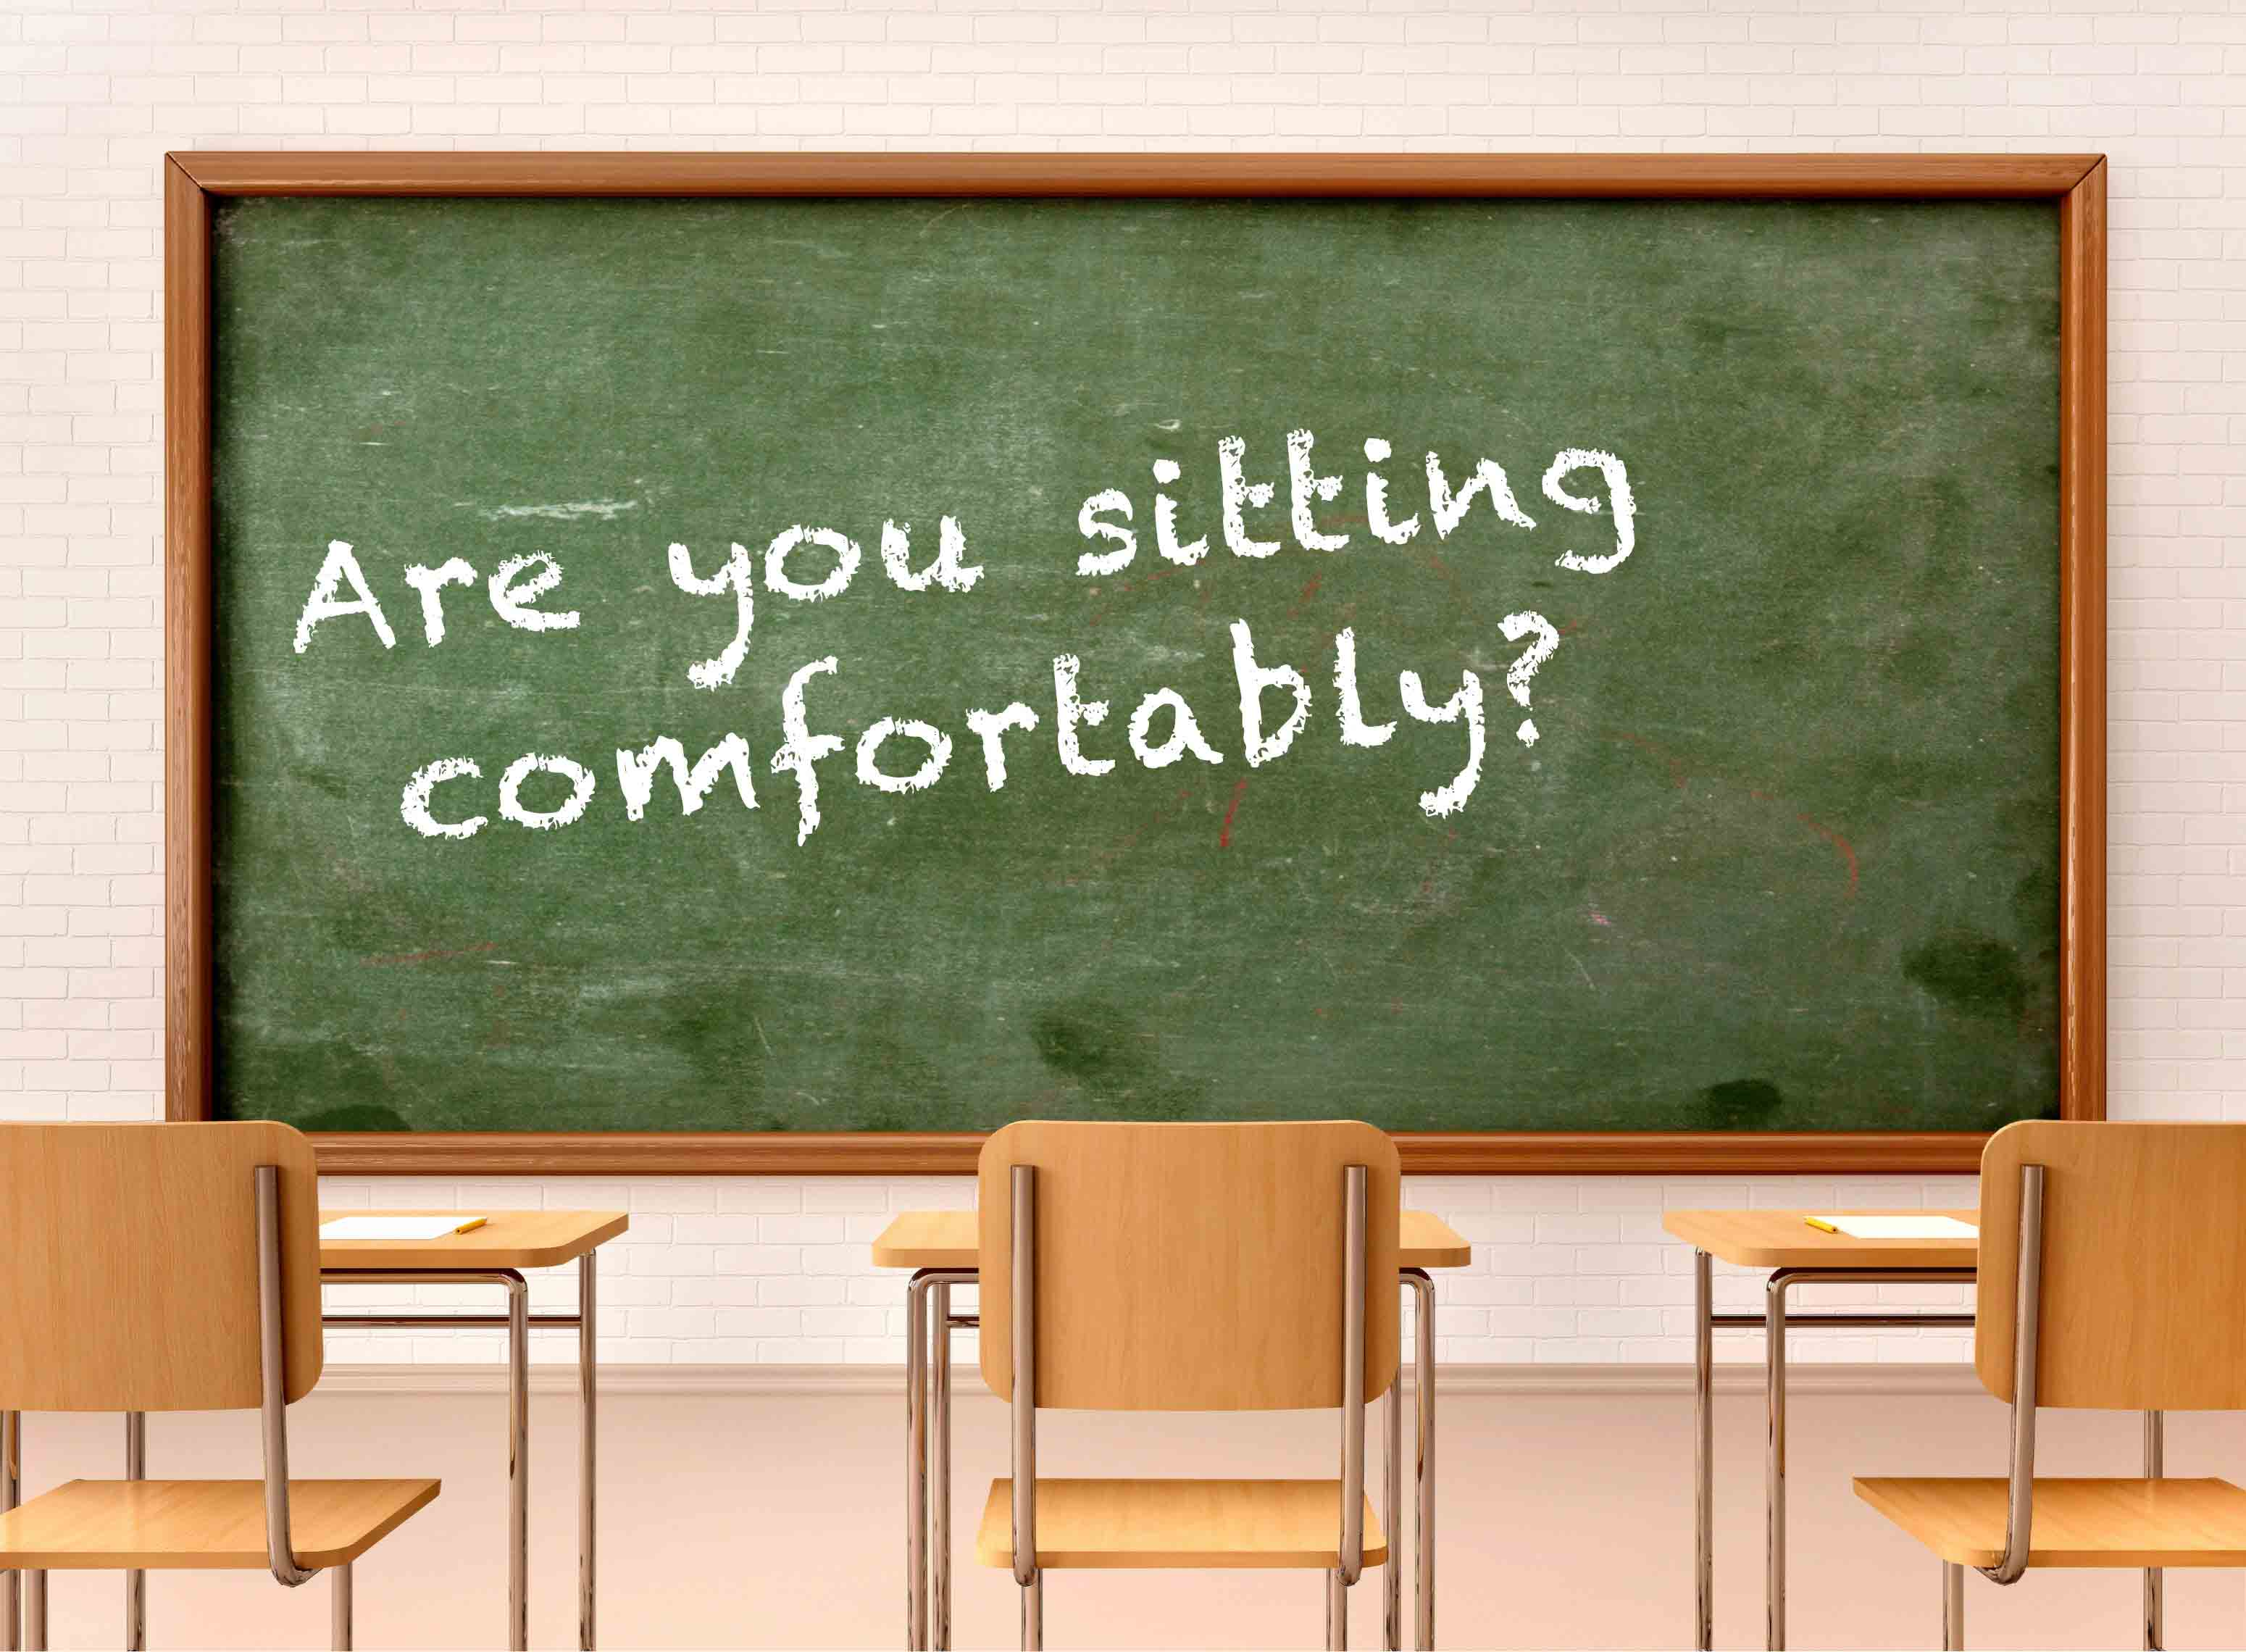 Education: Are you sitting comfortably?